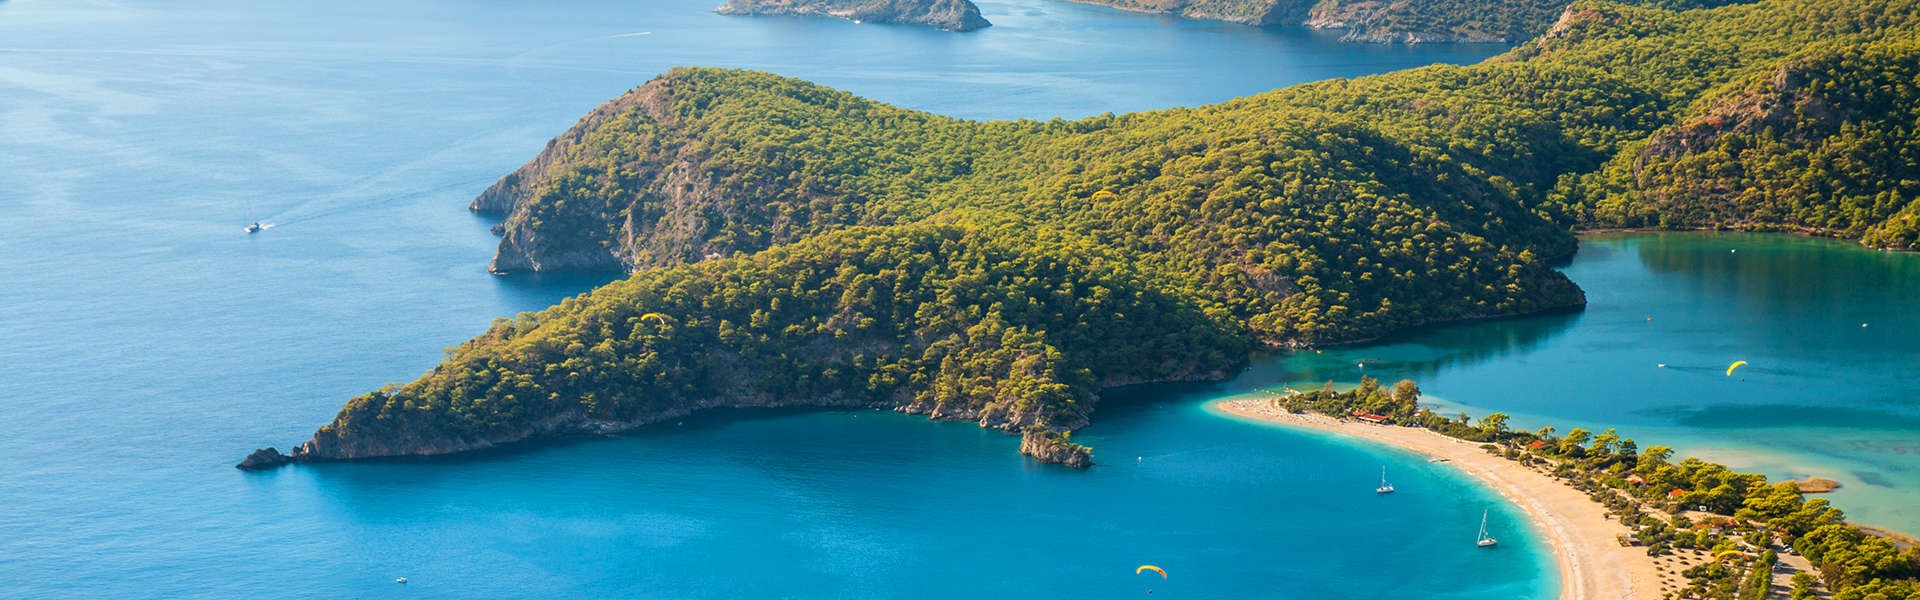 Oludeniz lagoon in sea landscape view of beach Turkey